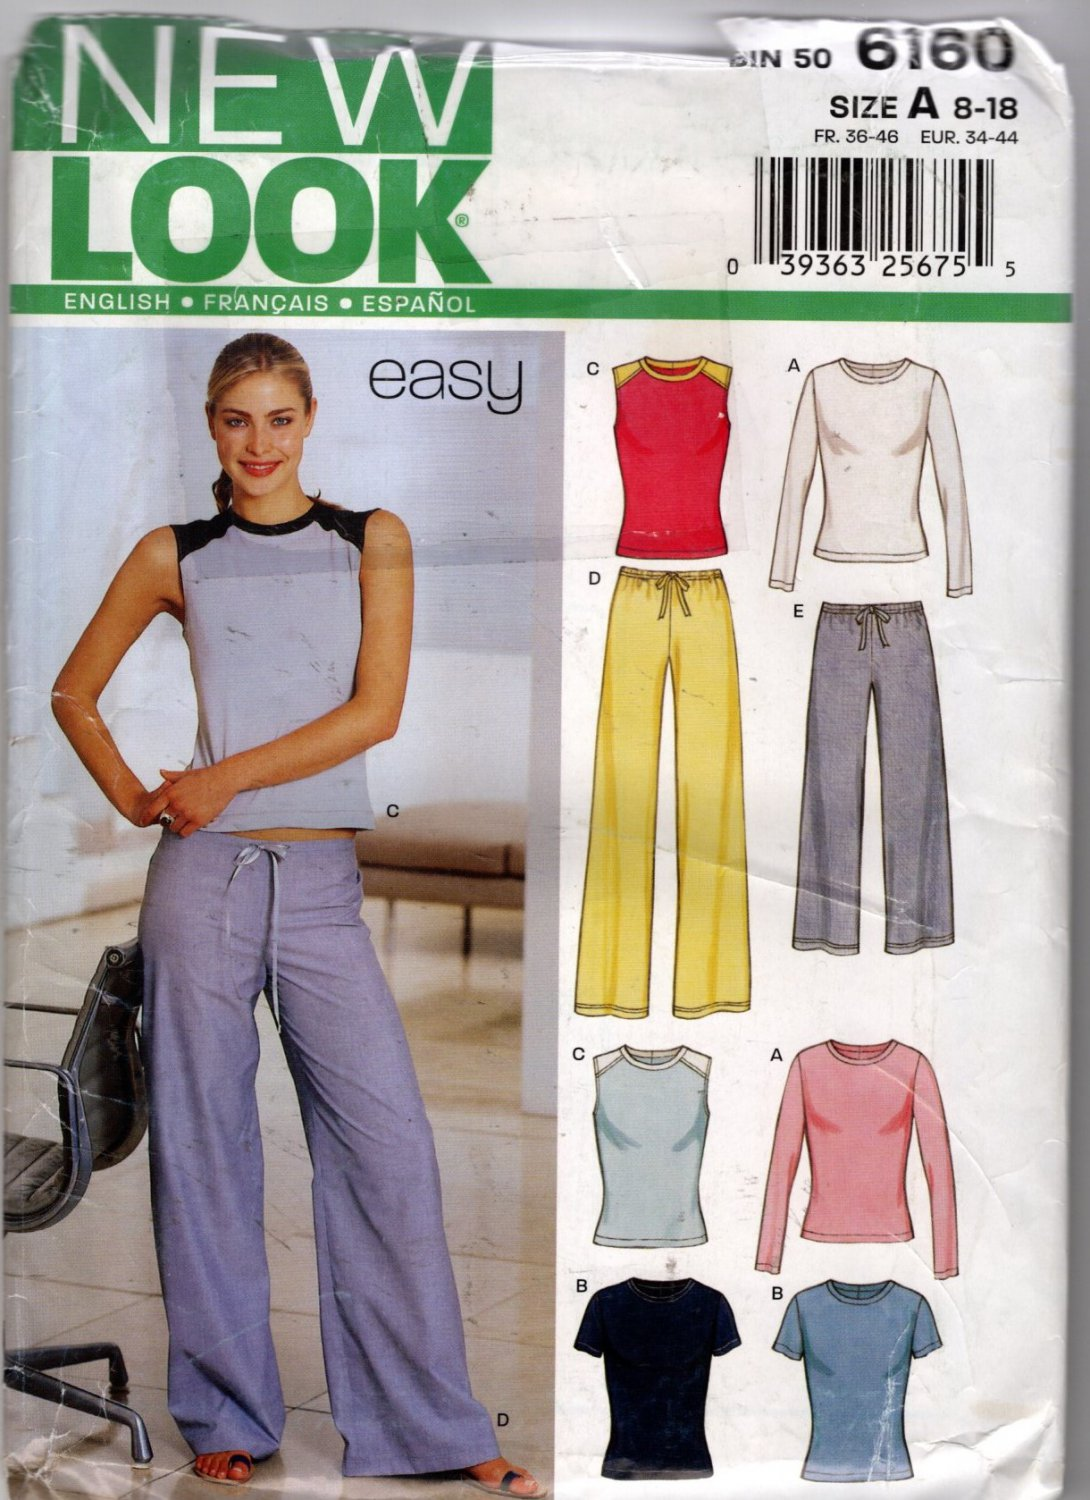 Pull On Pants and Top Sewing Pattern Simplicity New Look 6375 size 8 - 18 Uncut